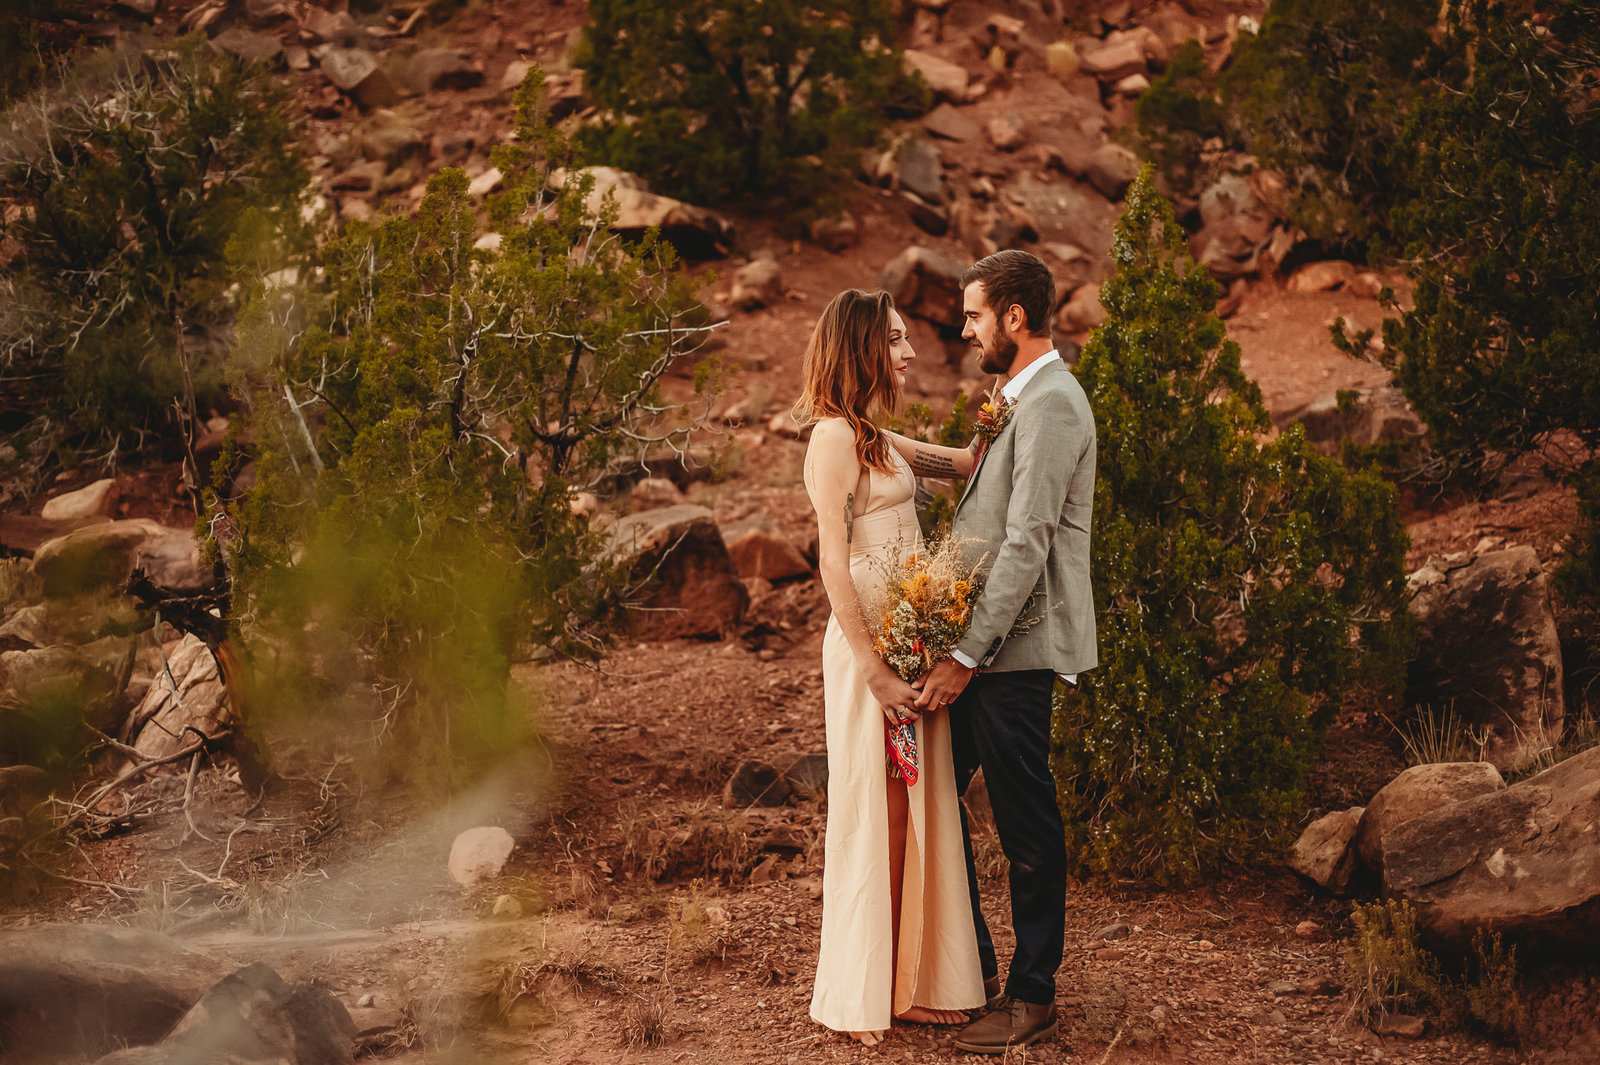 Chels + Alex_Jemez Springs New Mexico Elopement_Sneak Peek_Treolo Photography-7